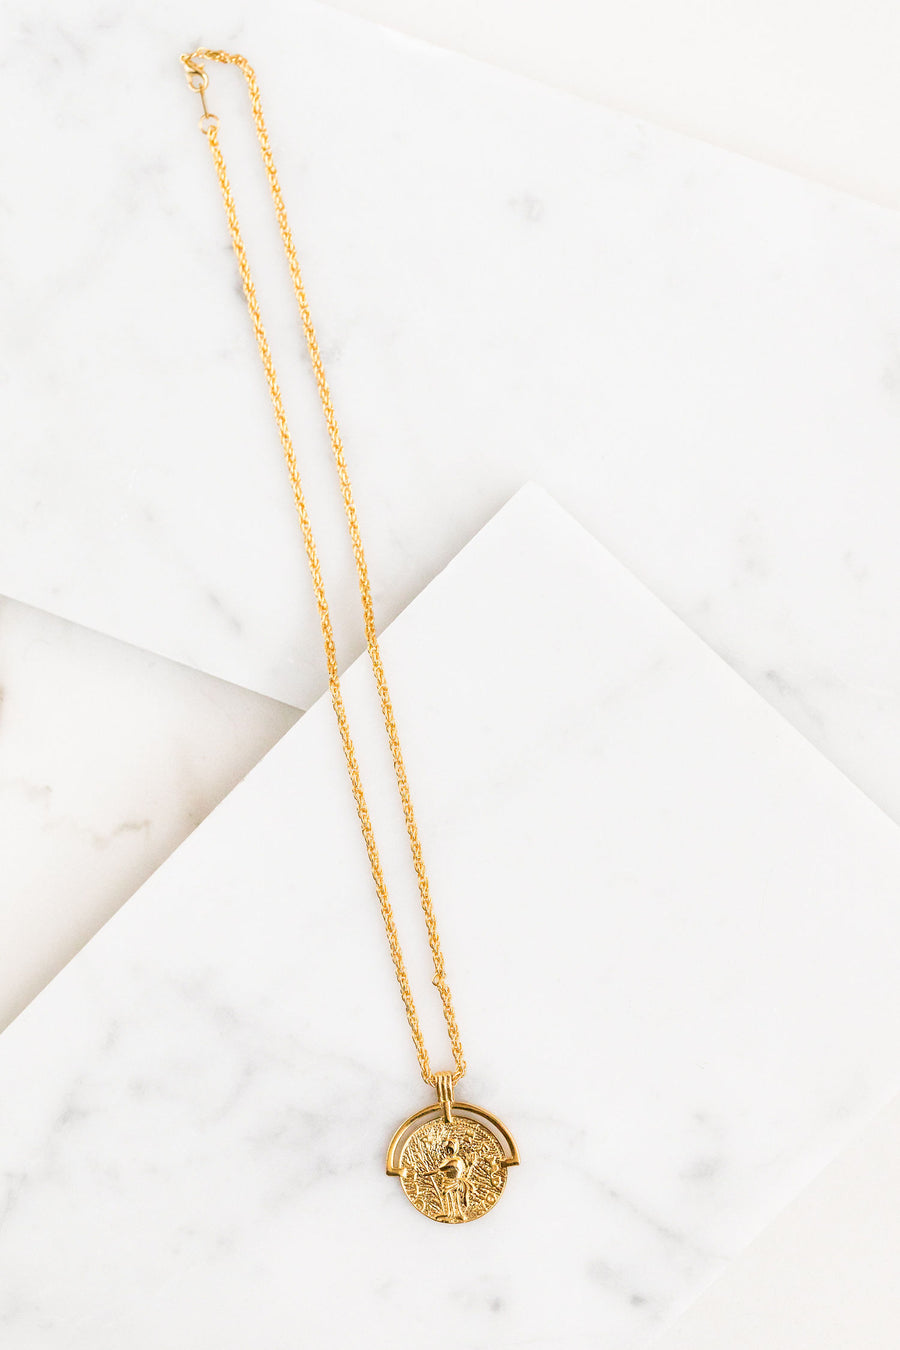 Find the perfect necklace you're looking for from Charme Silkiner! This beautiful 14K Gold Plated Necklace with a Greek Medallion is perfection. Great for layering or wearing alone everyday the Cassian Necklace is the perfect piece of unique jewelry that everyone should own.